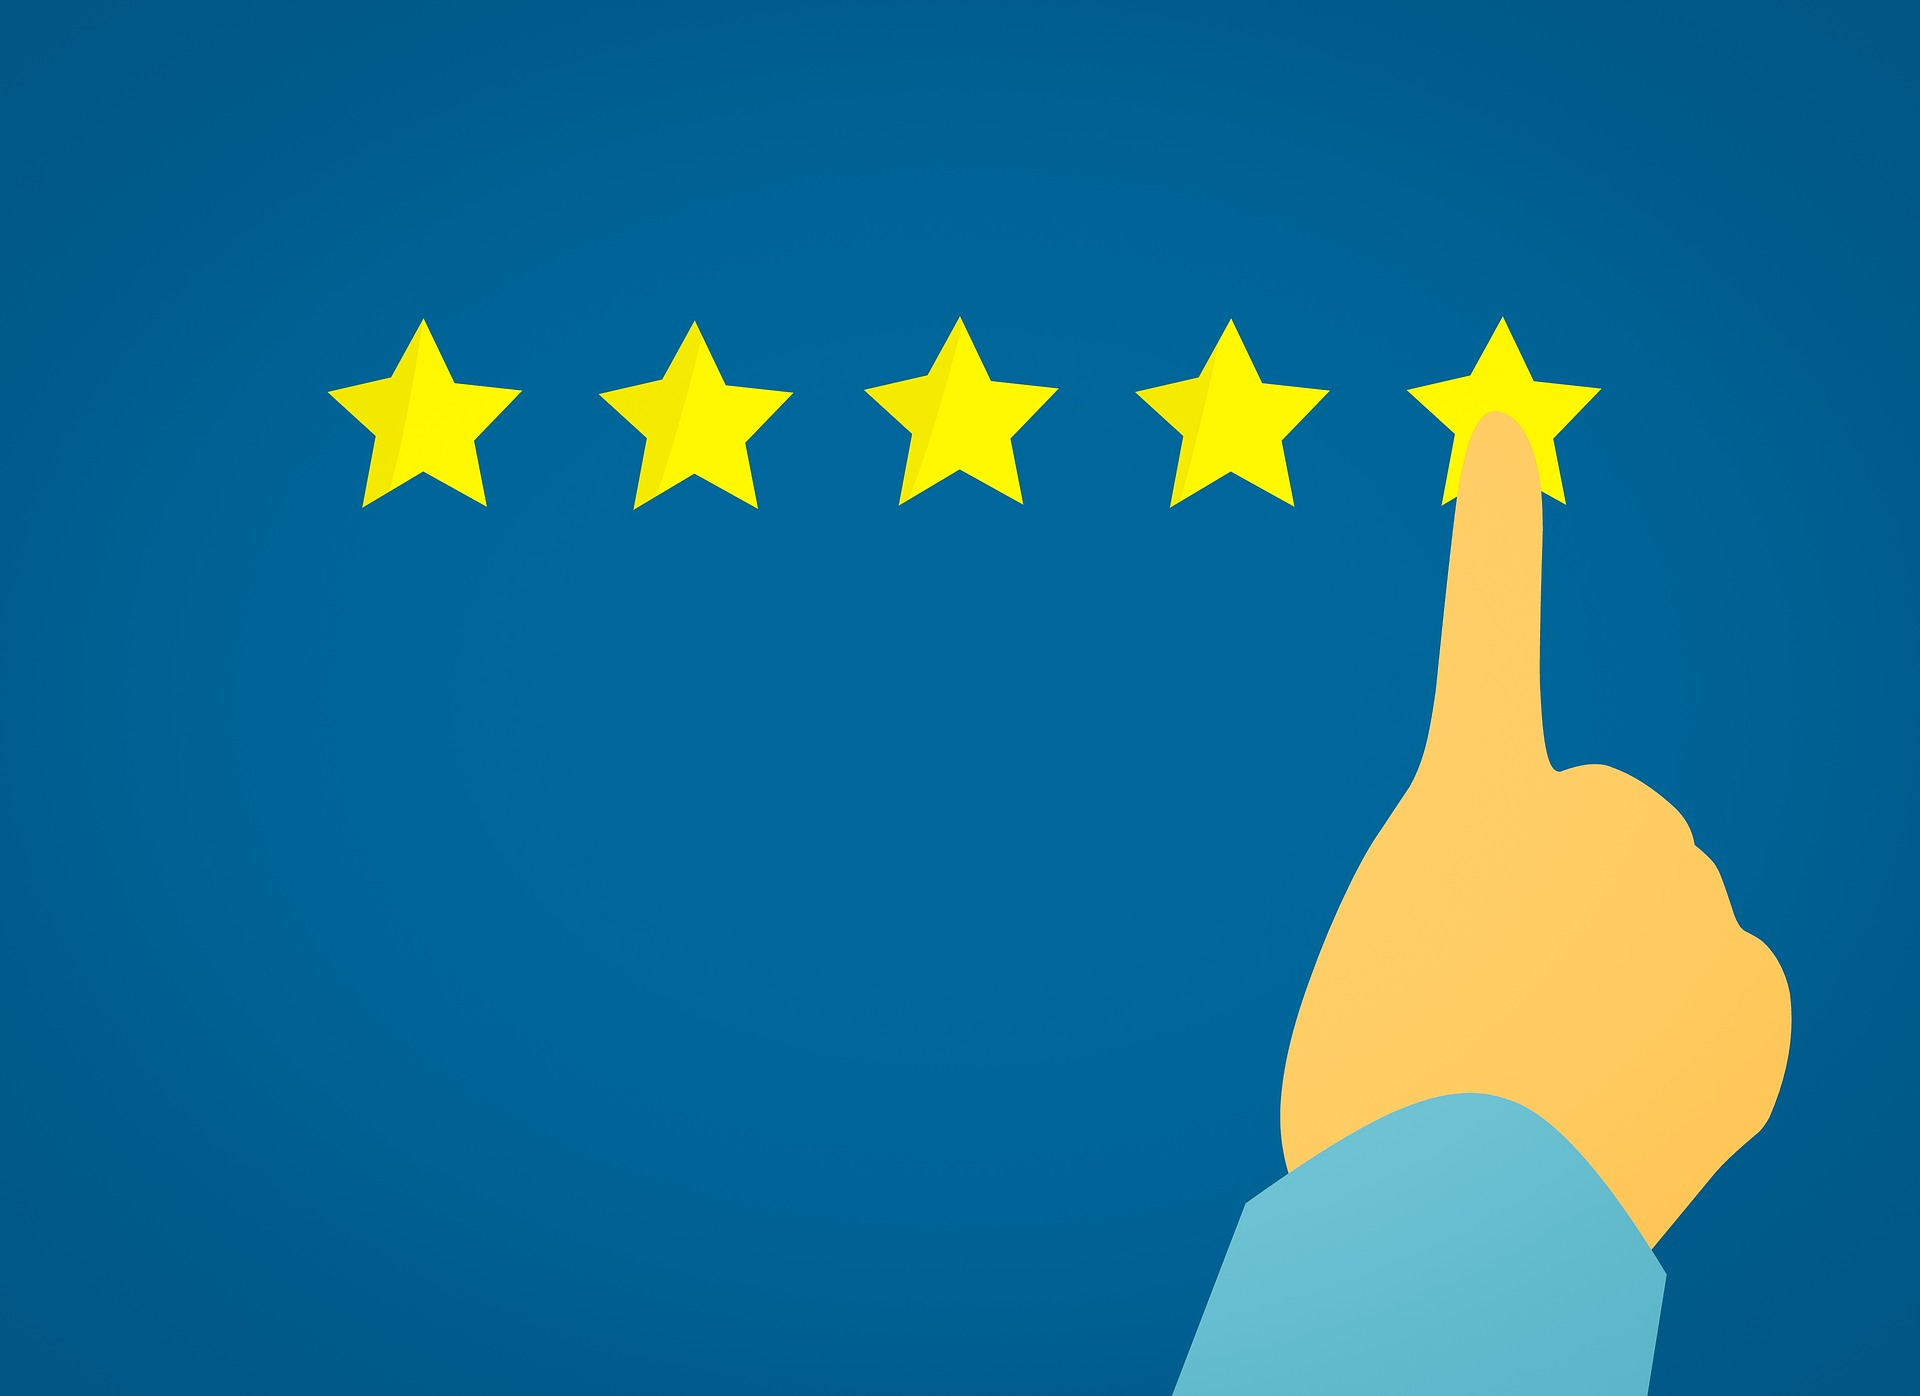 3 Ways to Leave Customer Reviews for Your Home Service Companies